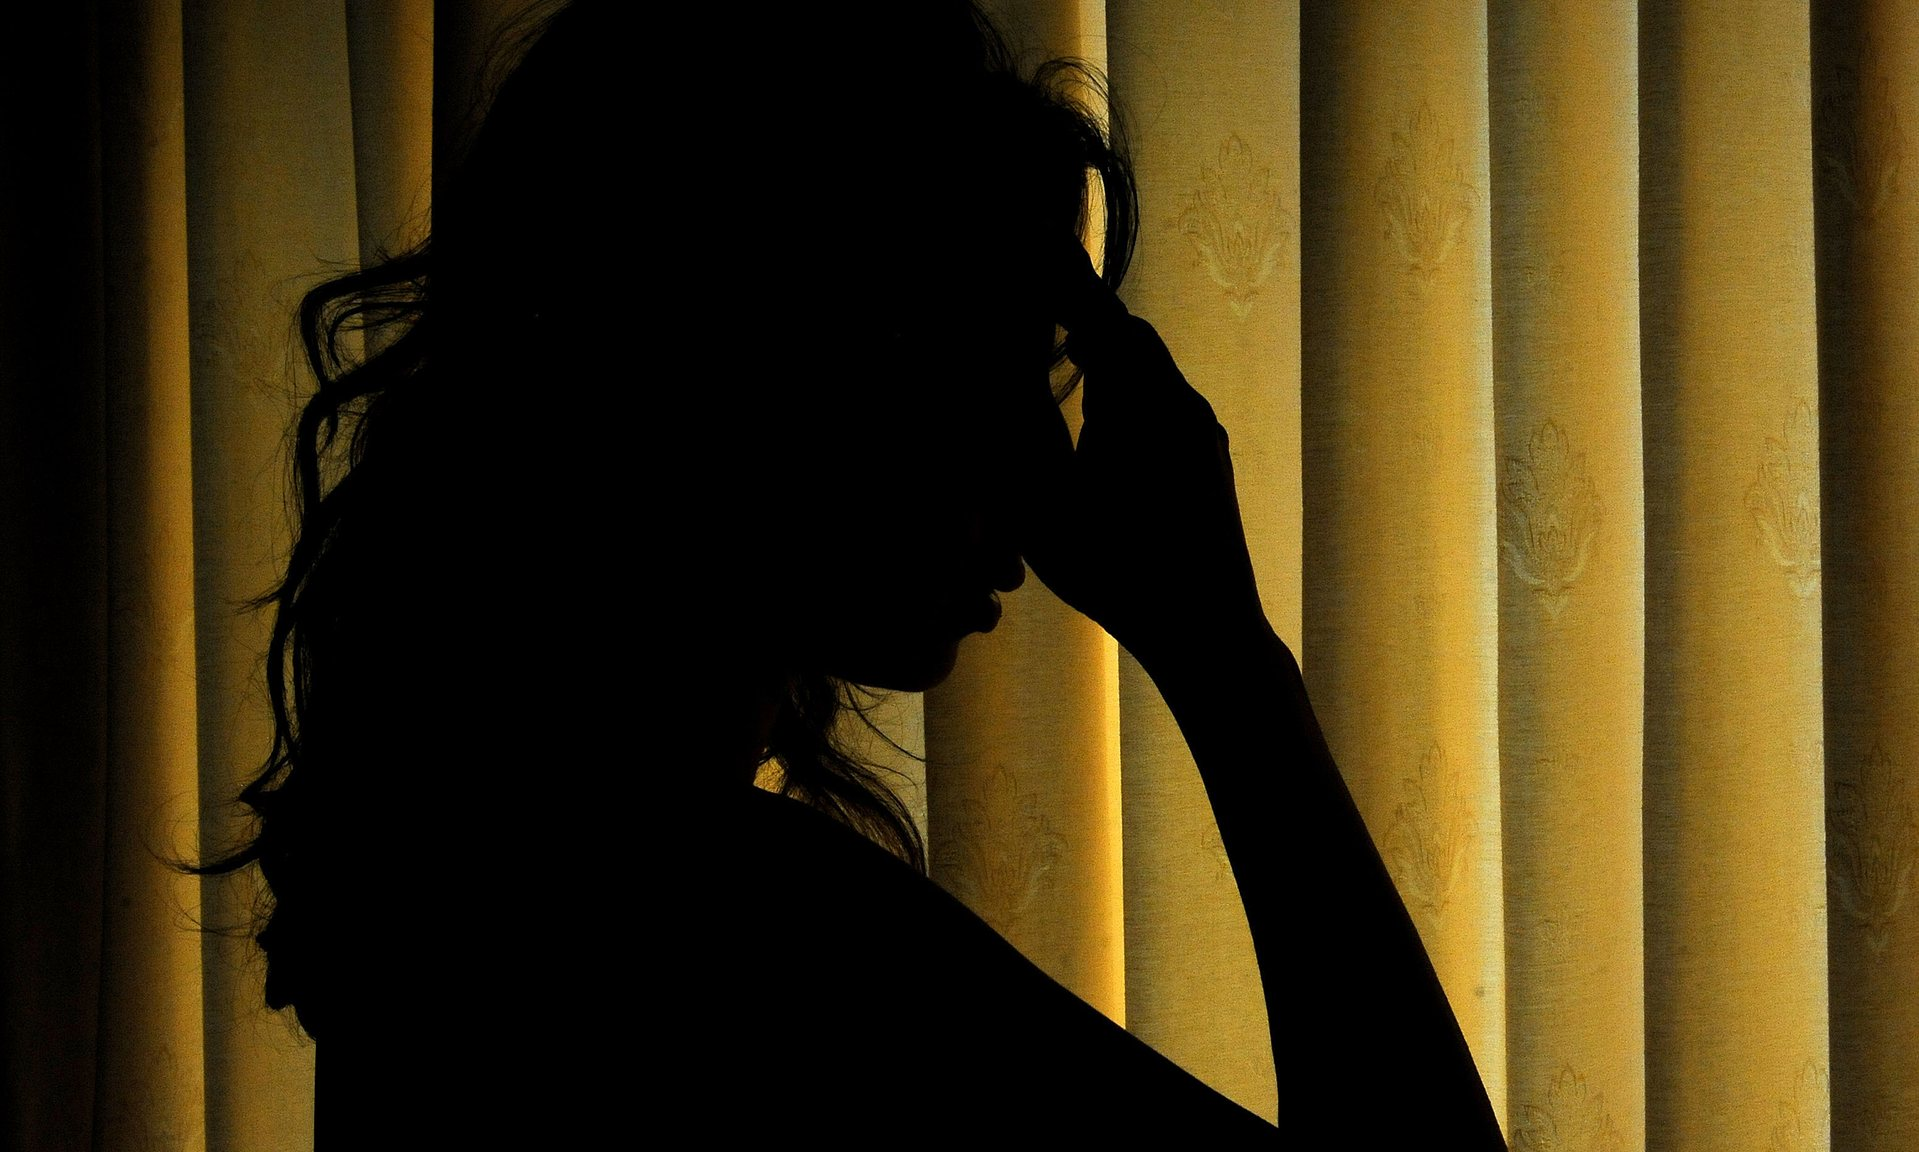 Modern slavery and human trafficking on the rise in UK